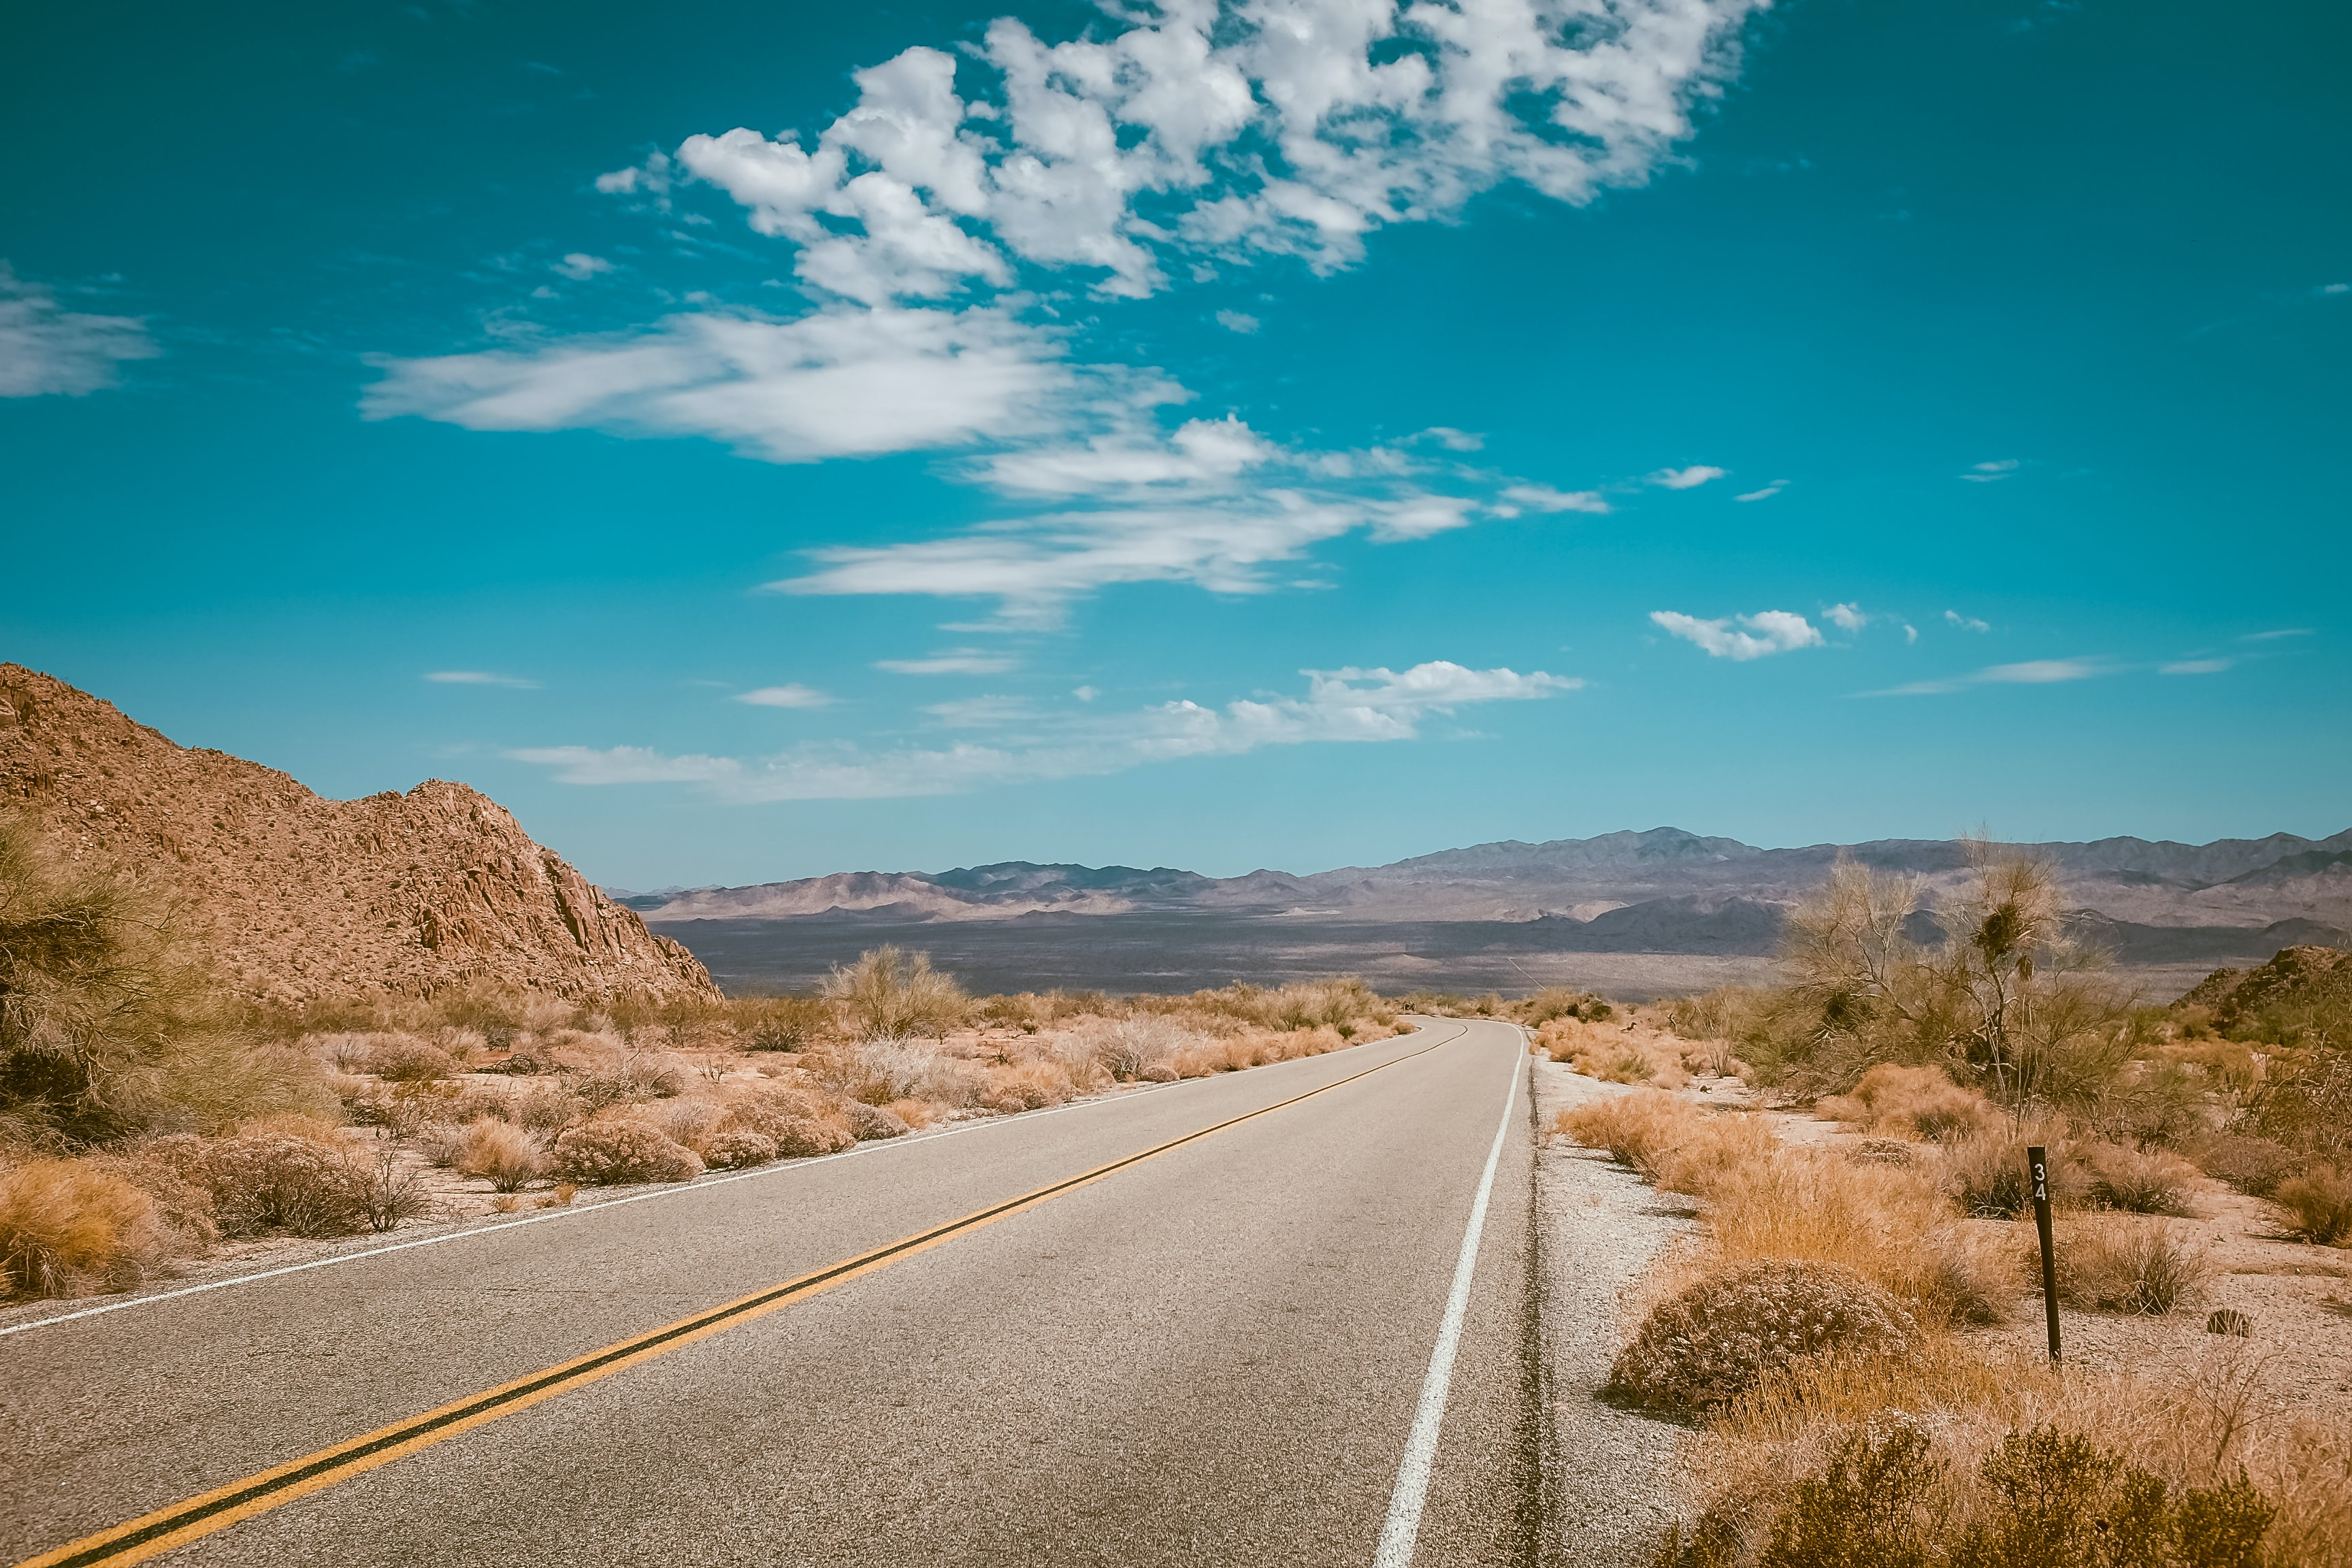 Empty highway across the desert with blue sky and mountains in the background